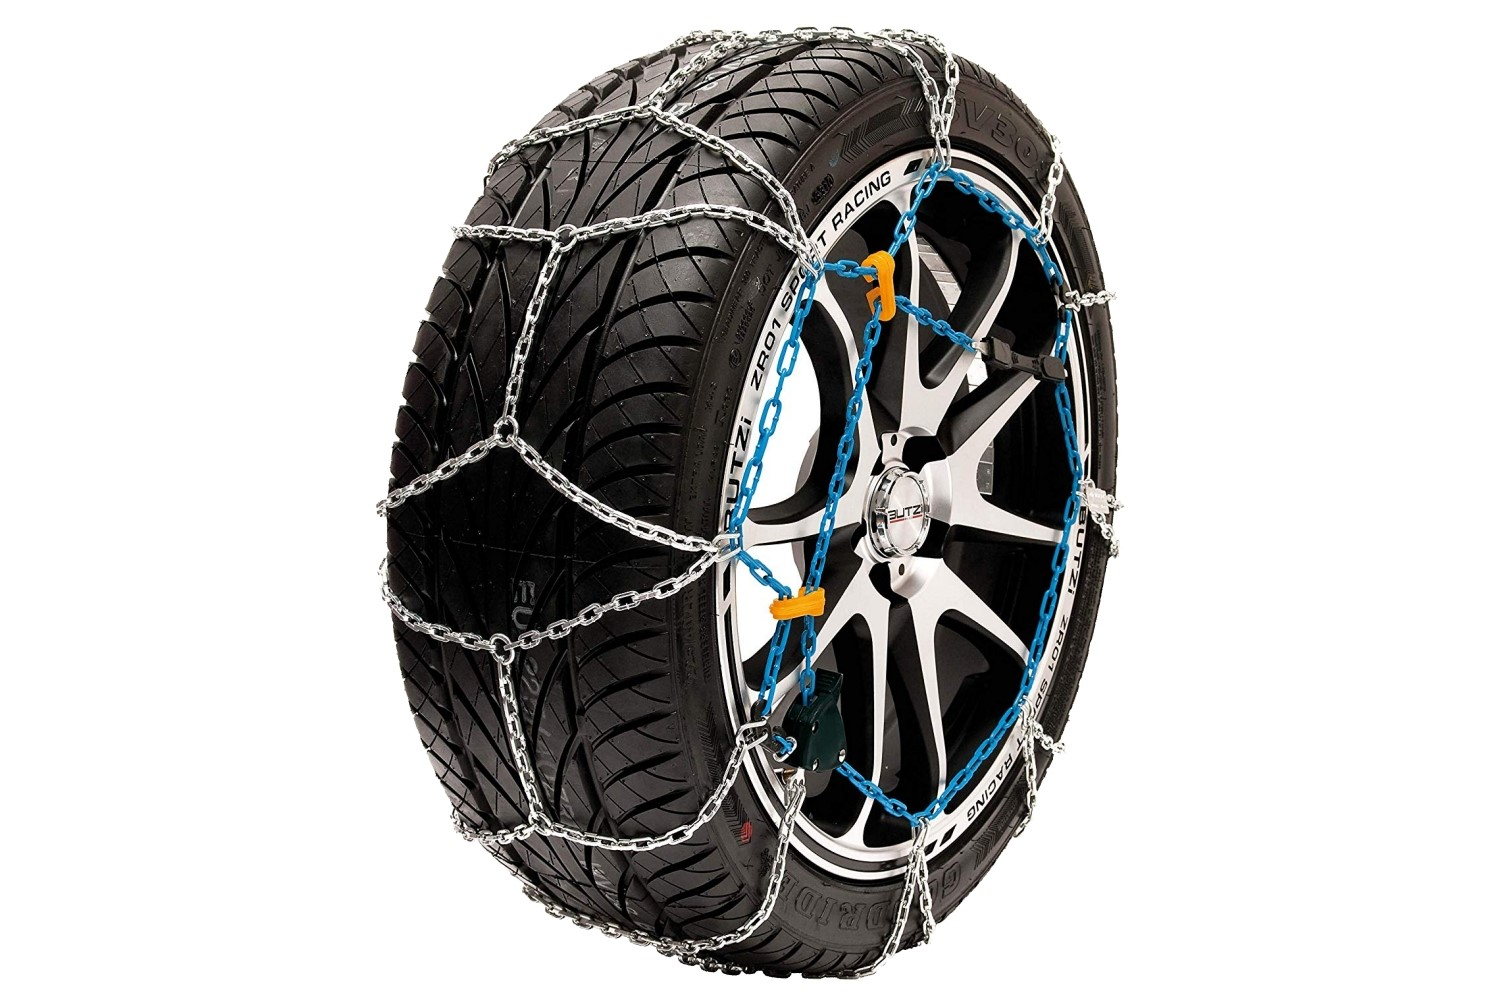 Snow Chains Husky Butzi 100 2 pieces - 215/65 R15